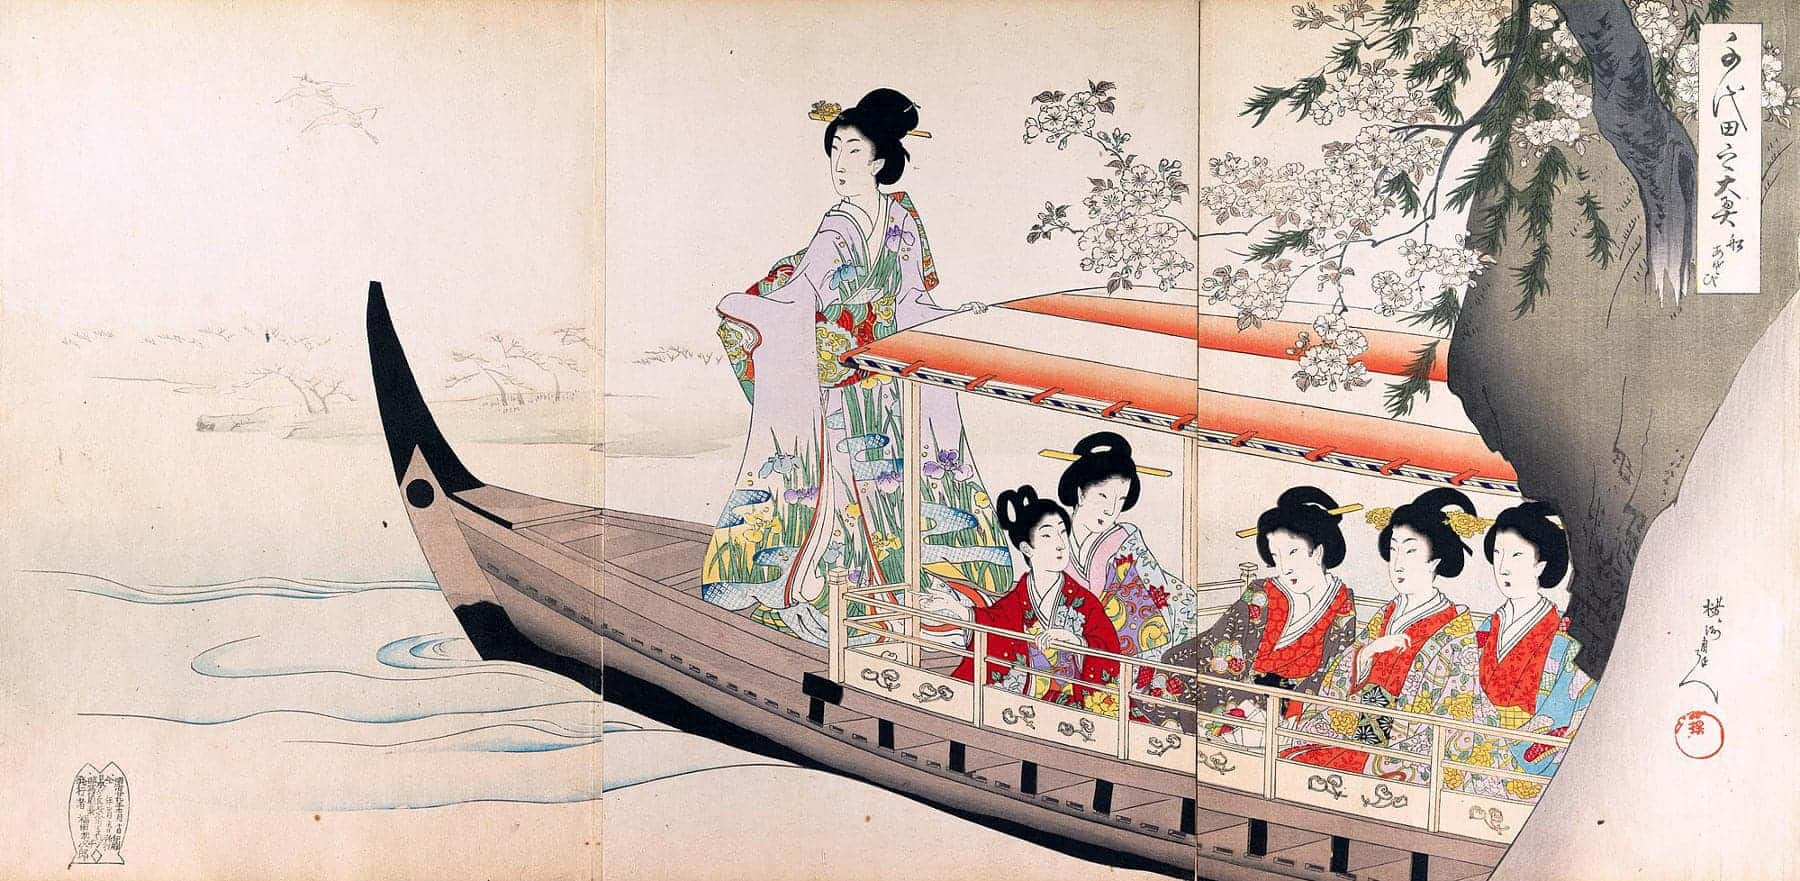 Life in the Women's Palace as imagined by the artist Hashimoto Chikanobu